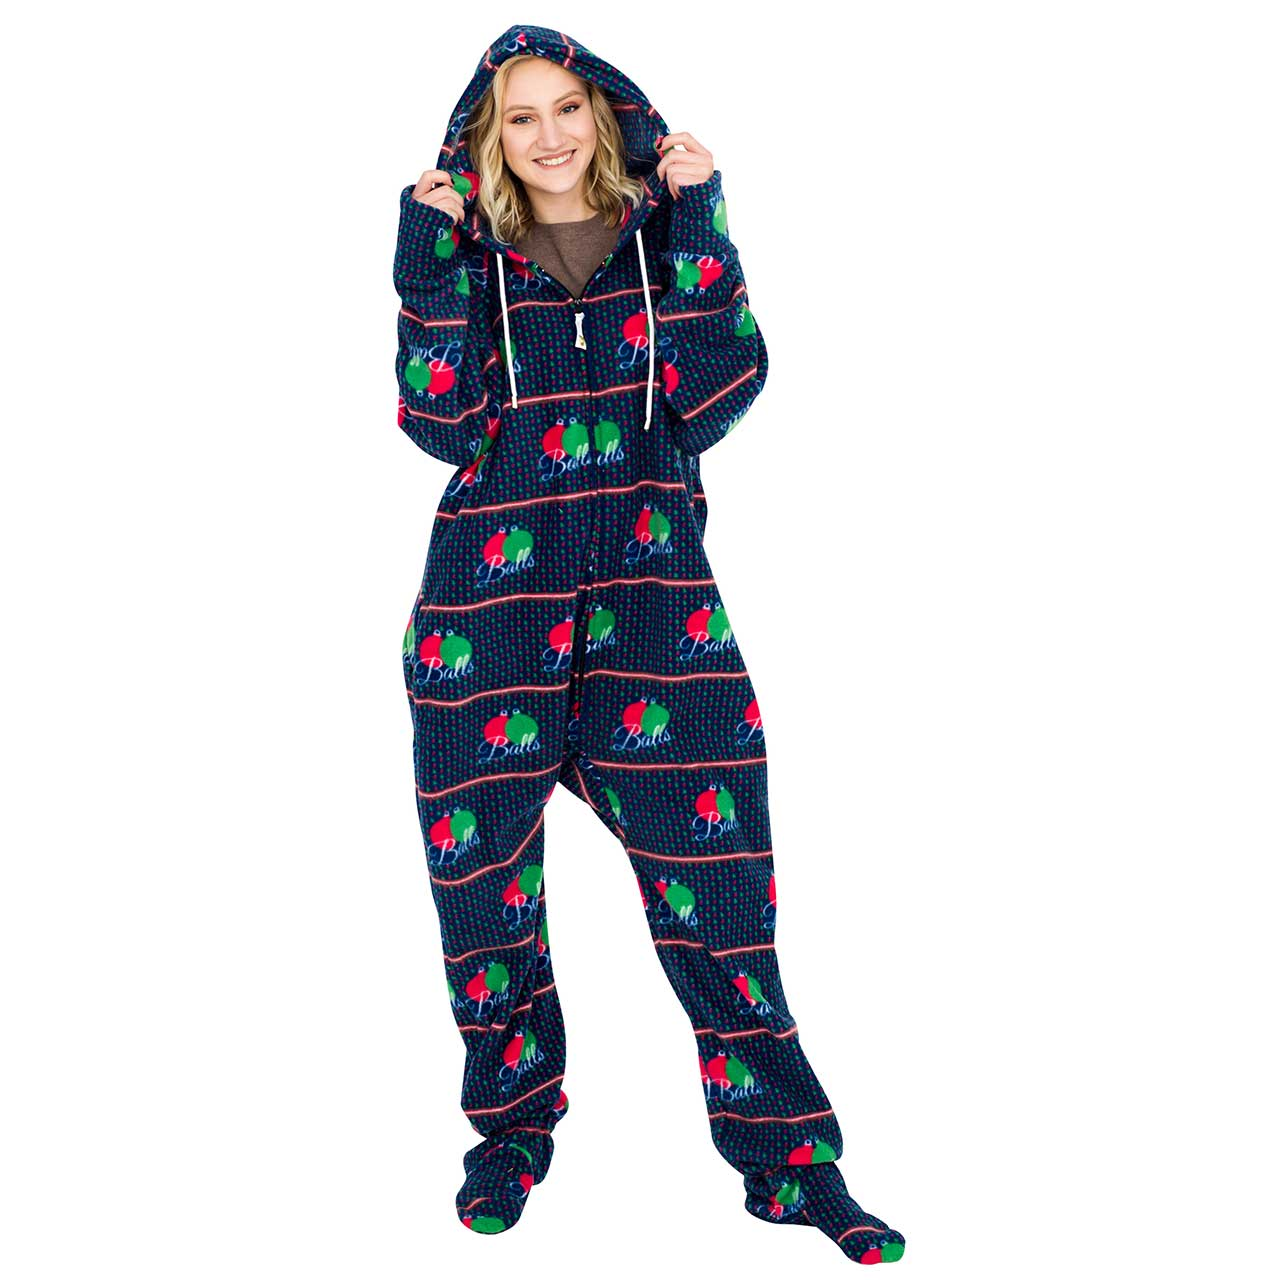 Balls Ugly Christmas Lazy Black Pajama Suit with Hood,Ugly Christmas Sweaters | Funny Xmas Sweaters for Men and Women